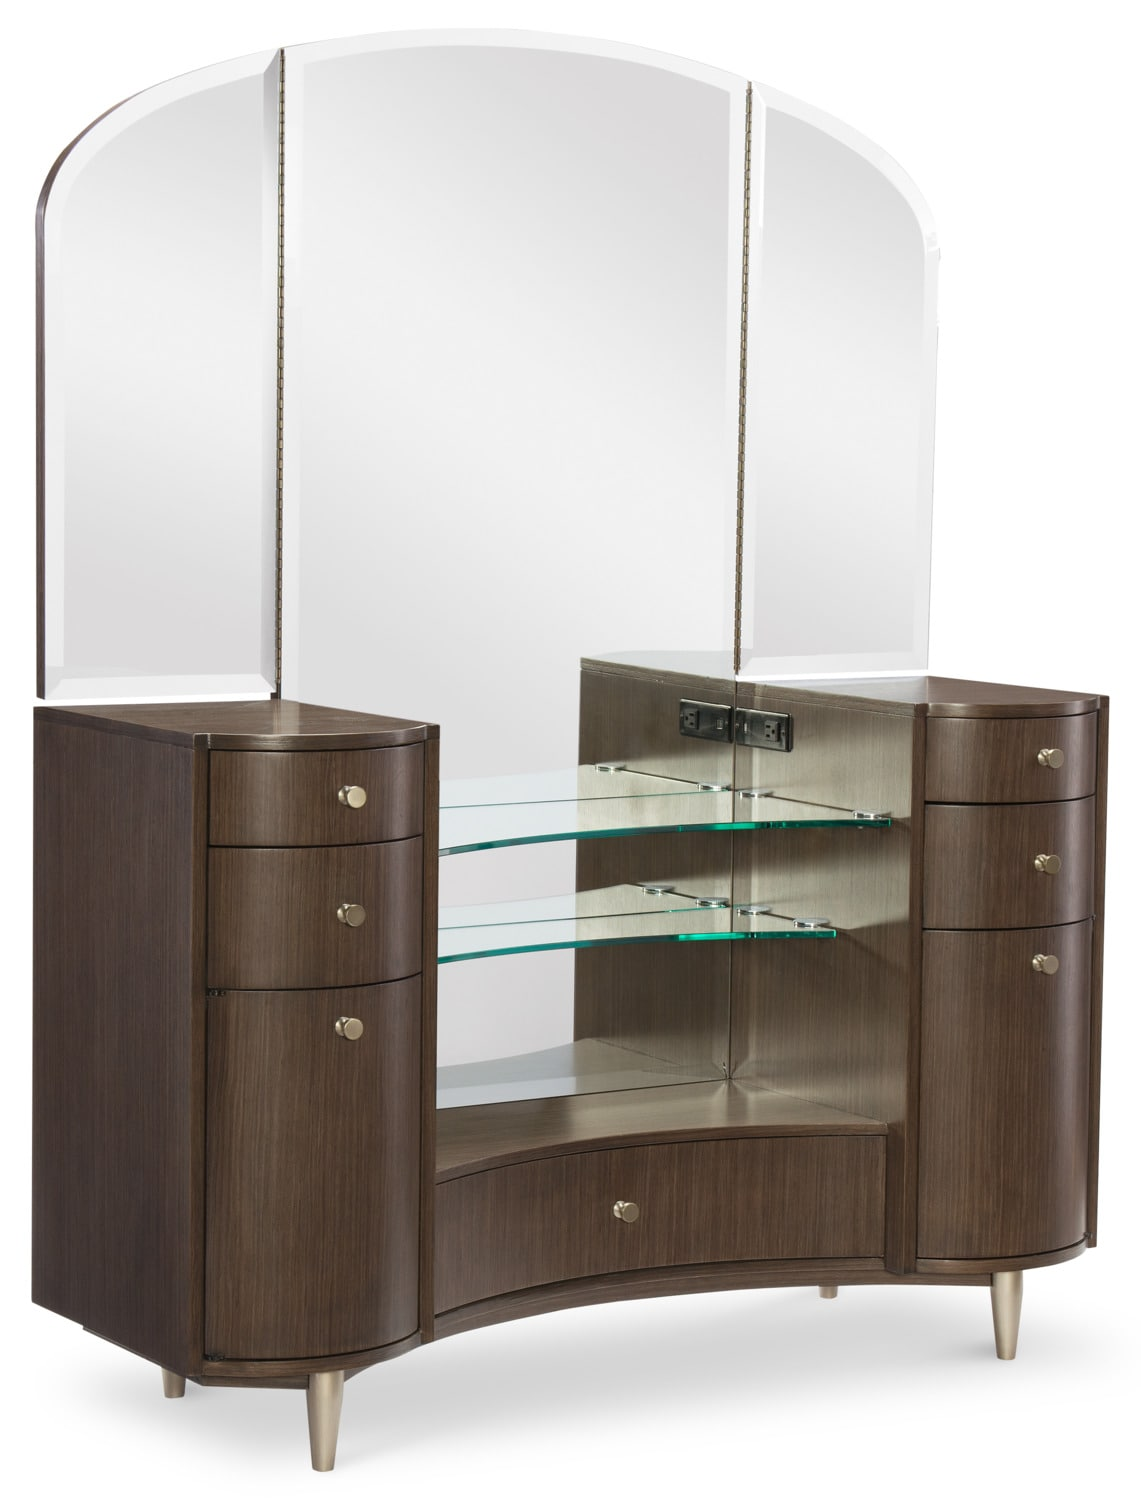 Rachael Ray Soho Vanity Desk and Mirror Set - Ash Brown